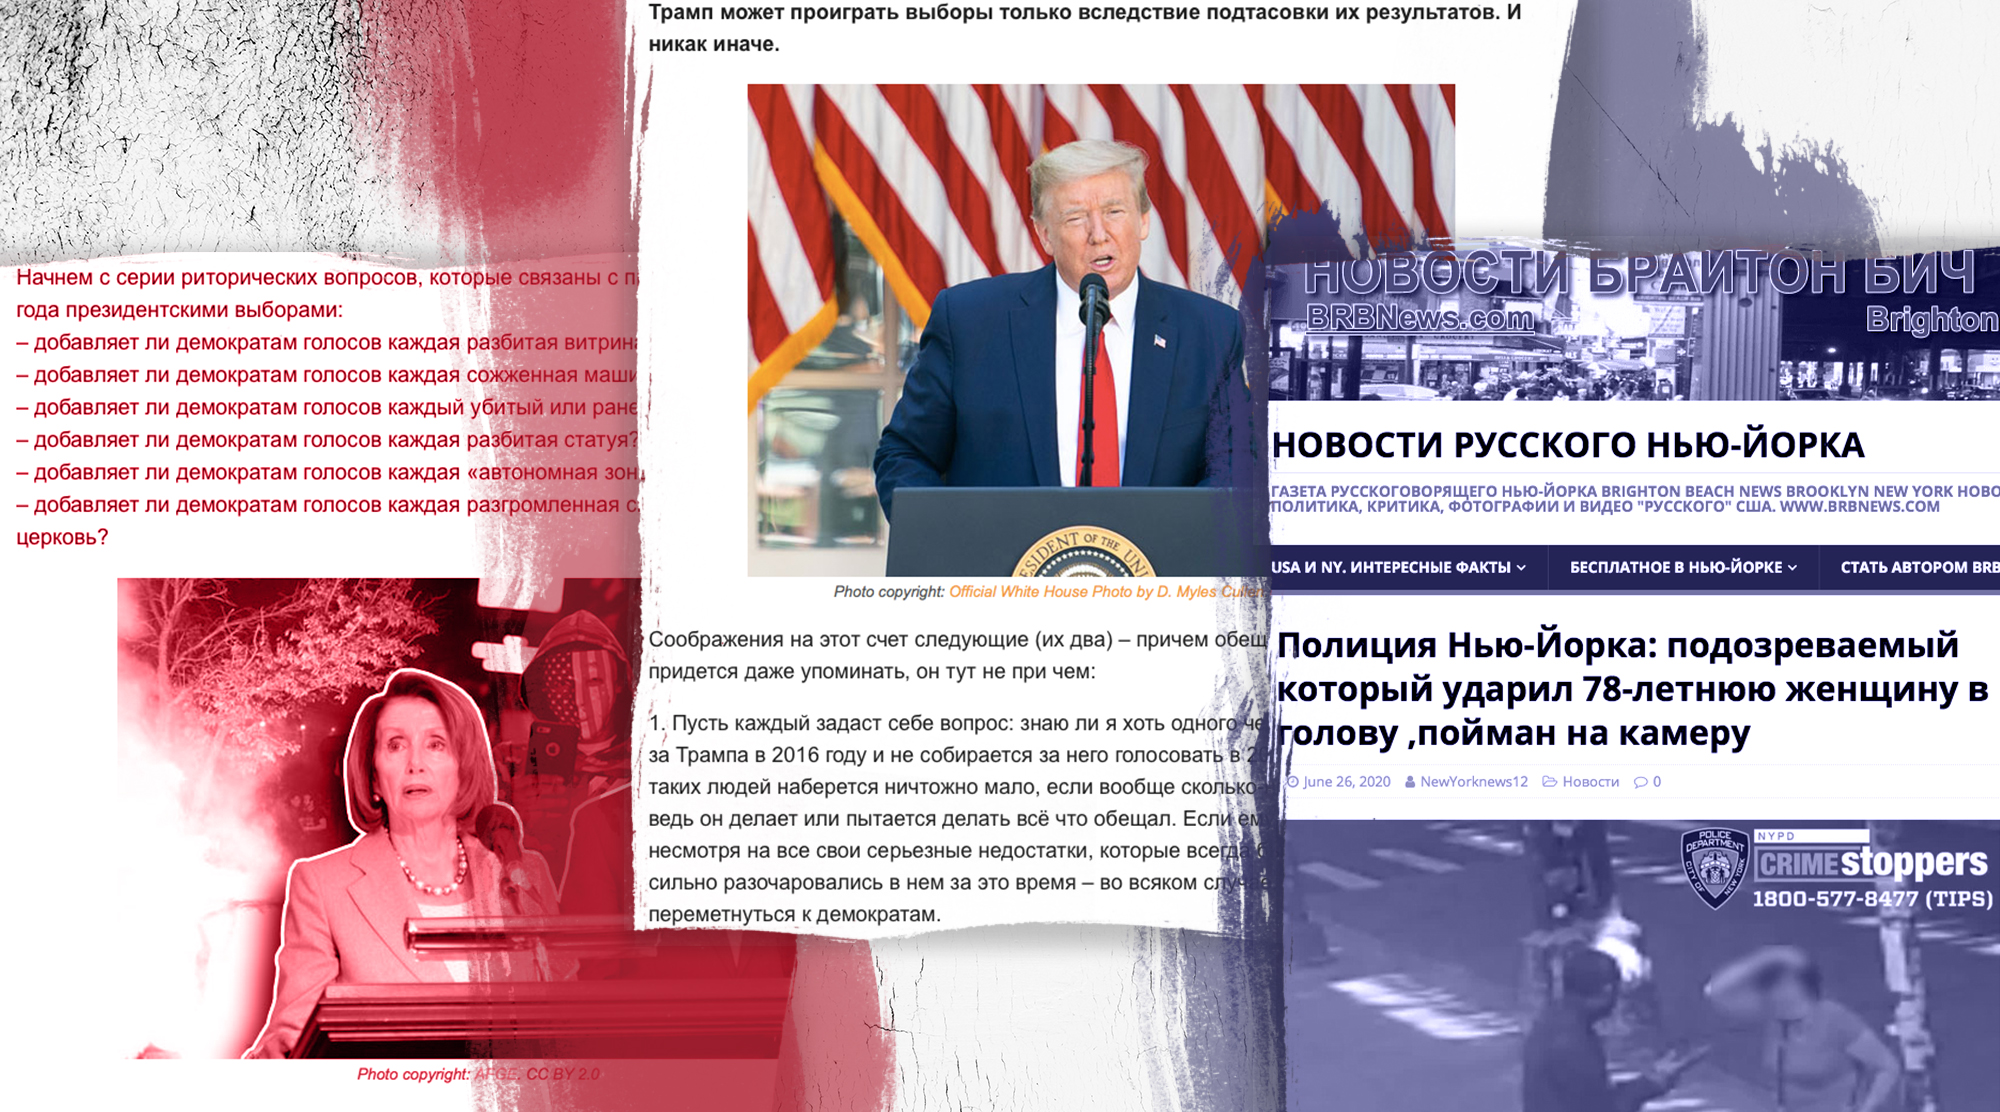 Investigation:Russian Language Media Based Within The United States is a Significant Disinfo Source